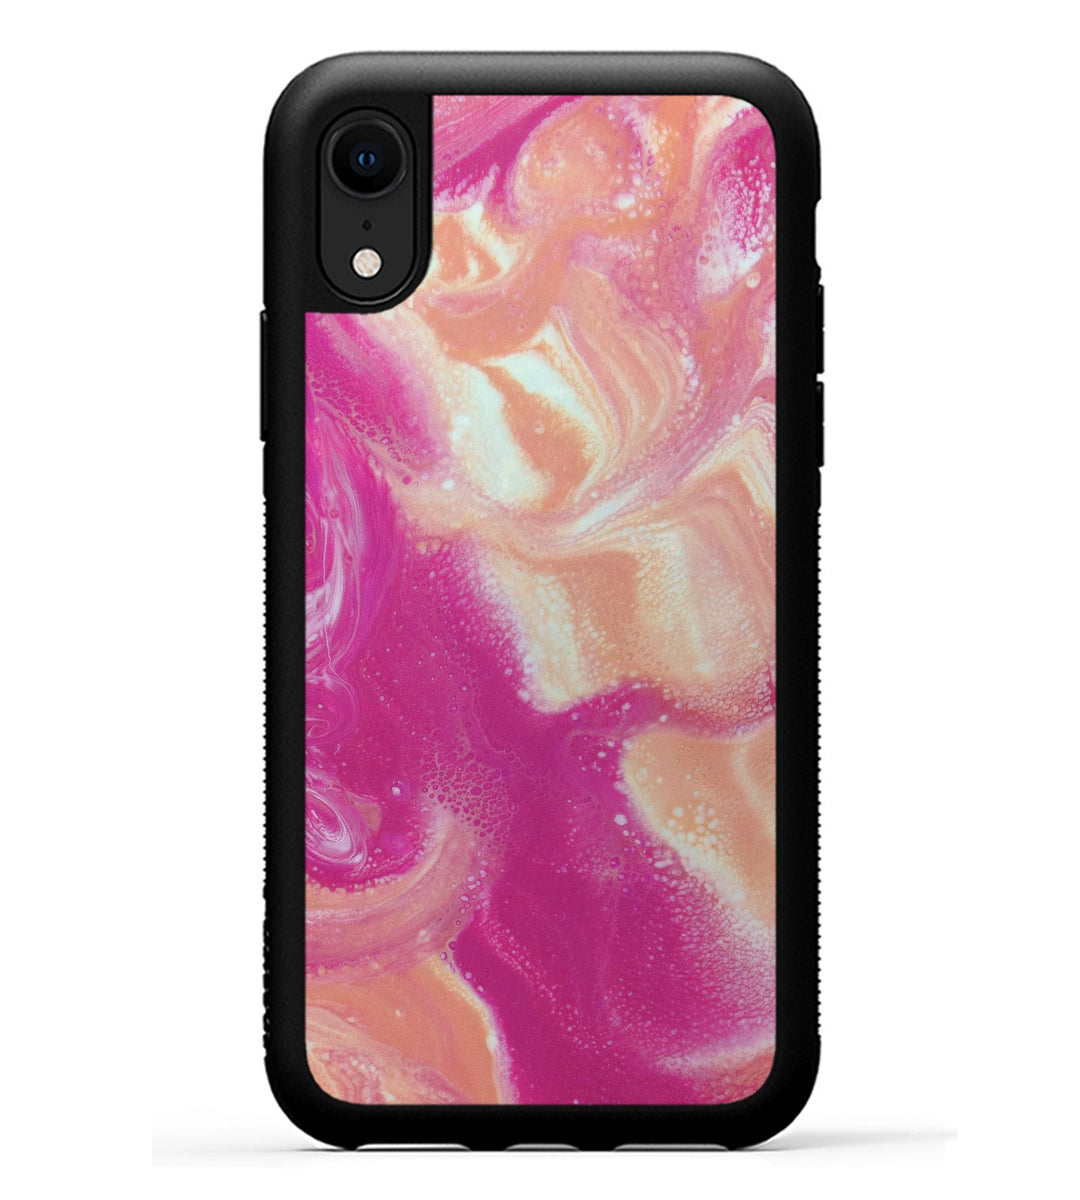 iPhone Xr Case - Tiertza (Pink, 346293)